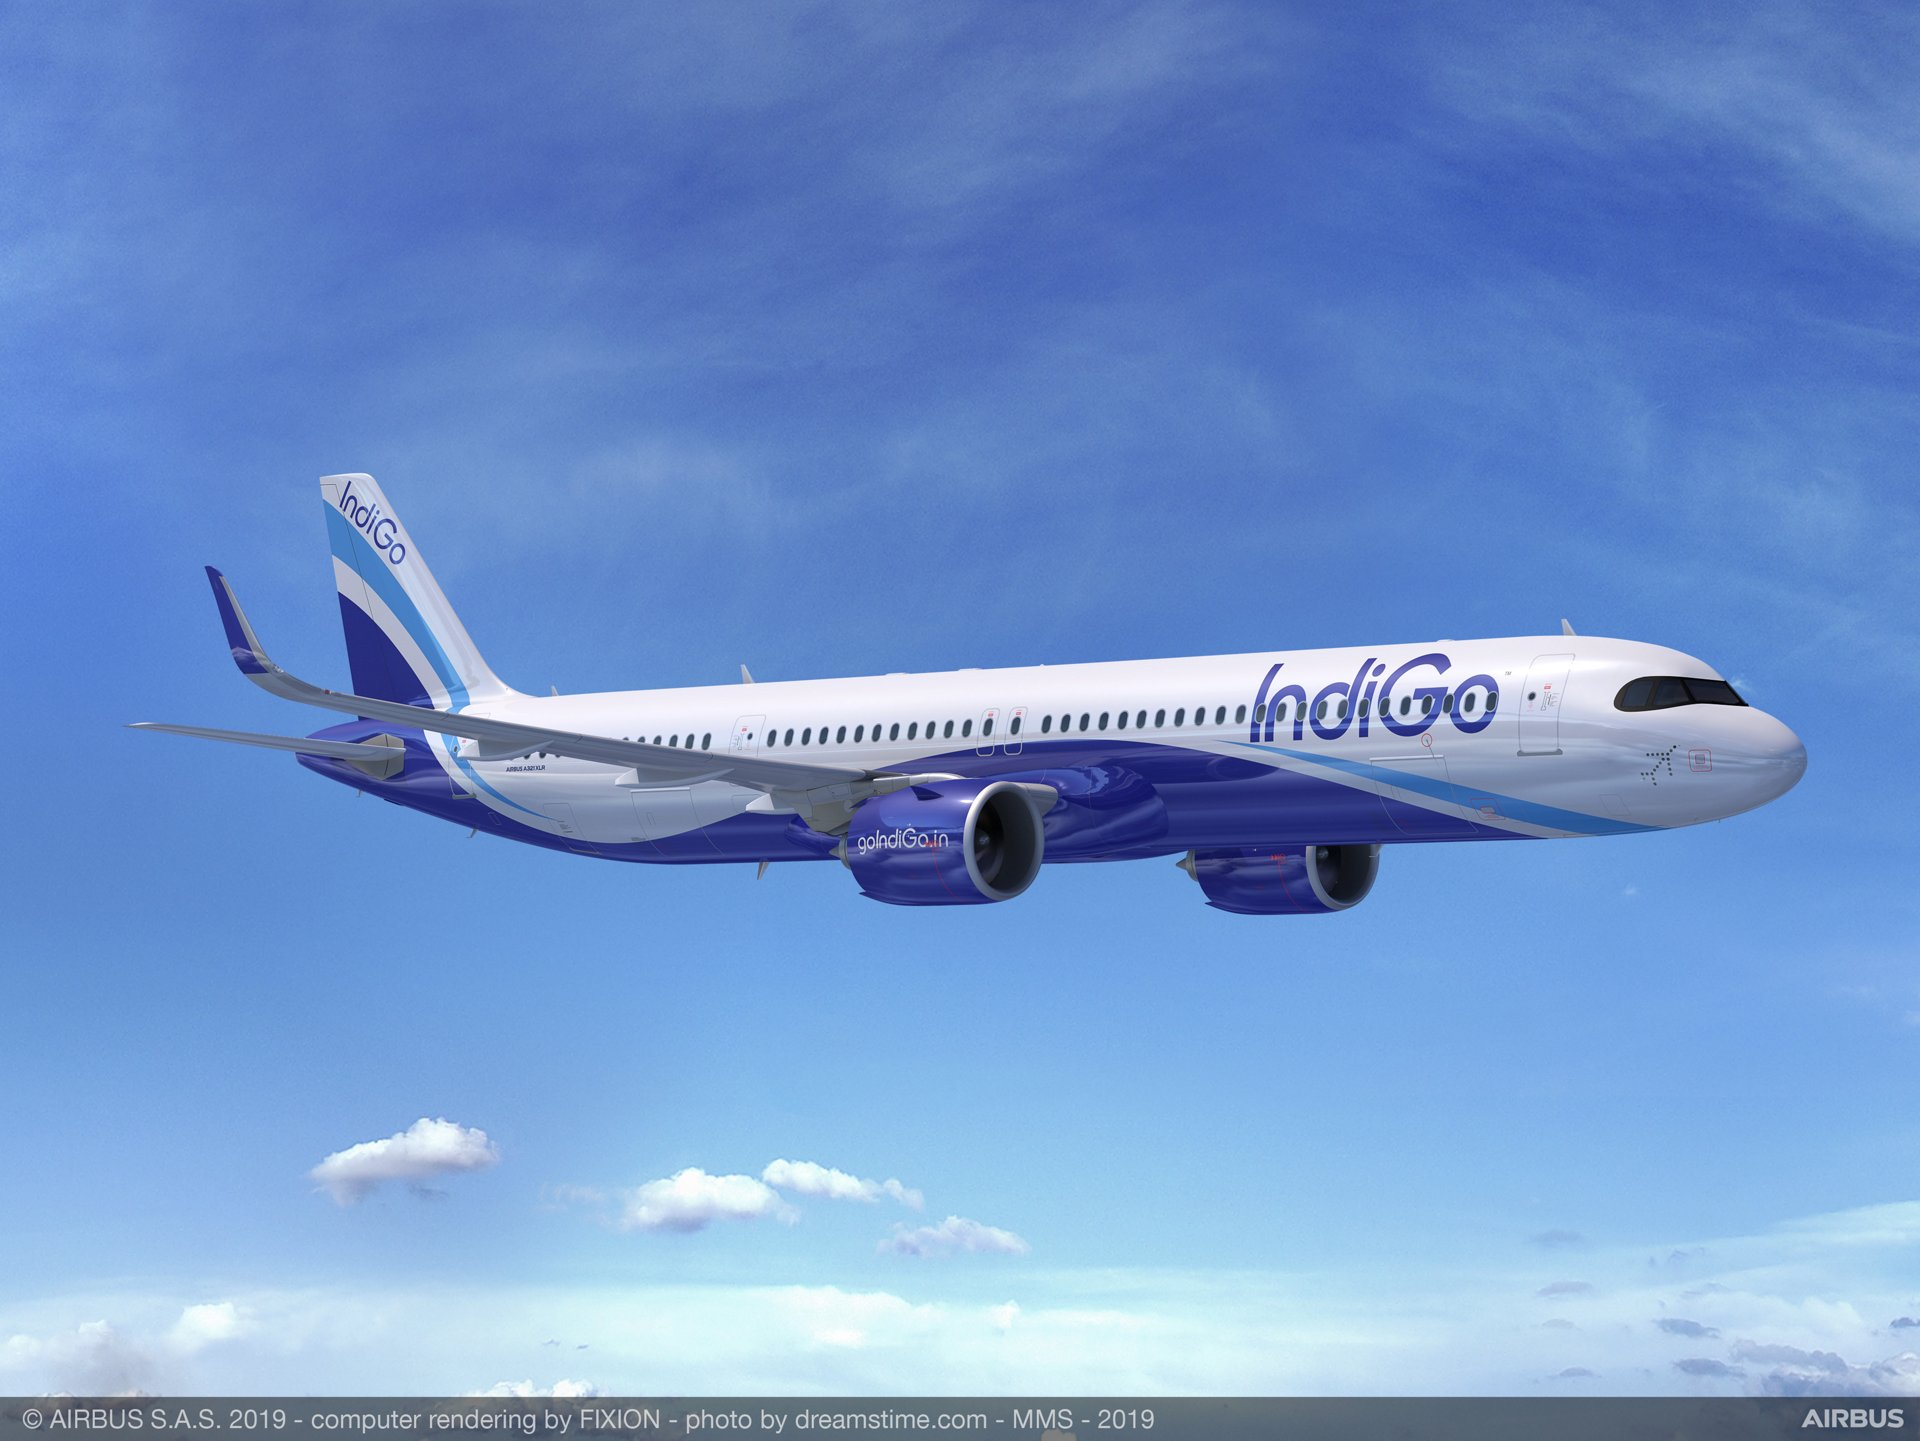 Landmark order for Airbus: IndiGo signs for 300 A320neo Family aircraft